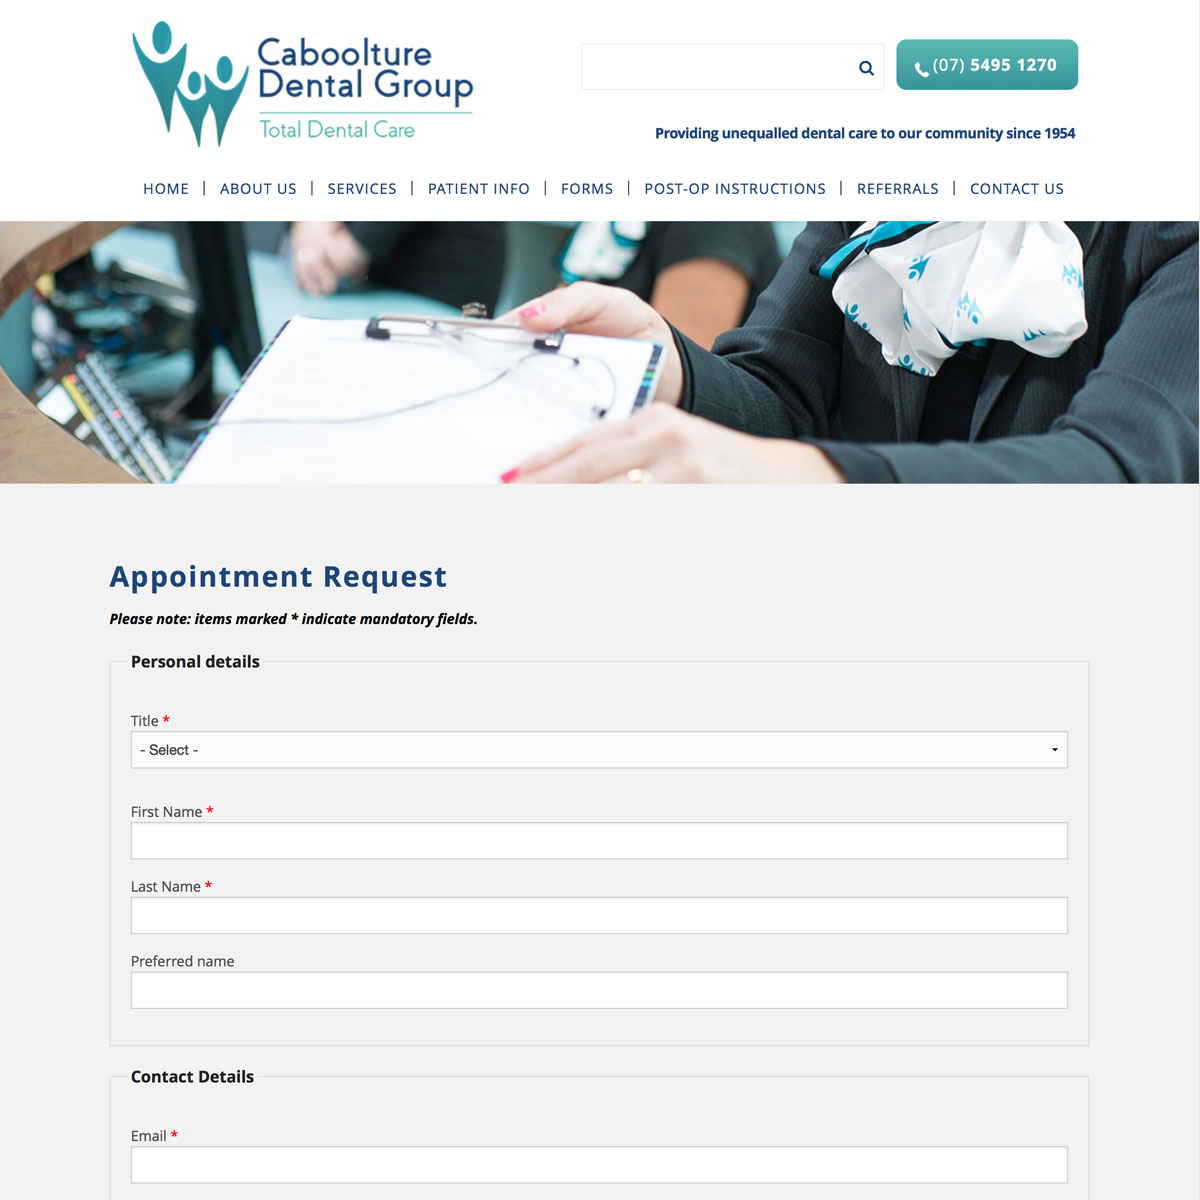 Caboolture Dental - Appointment Request